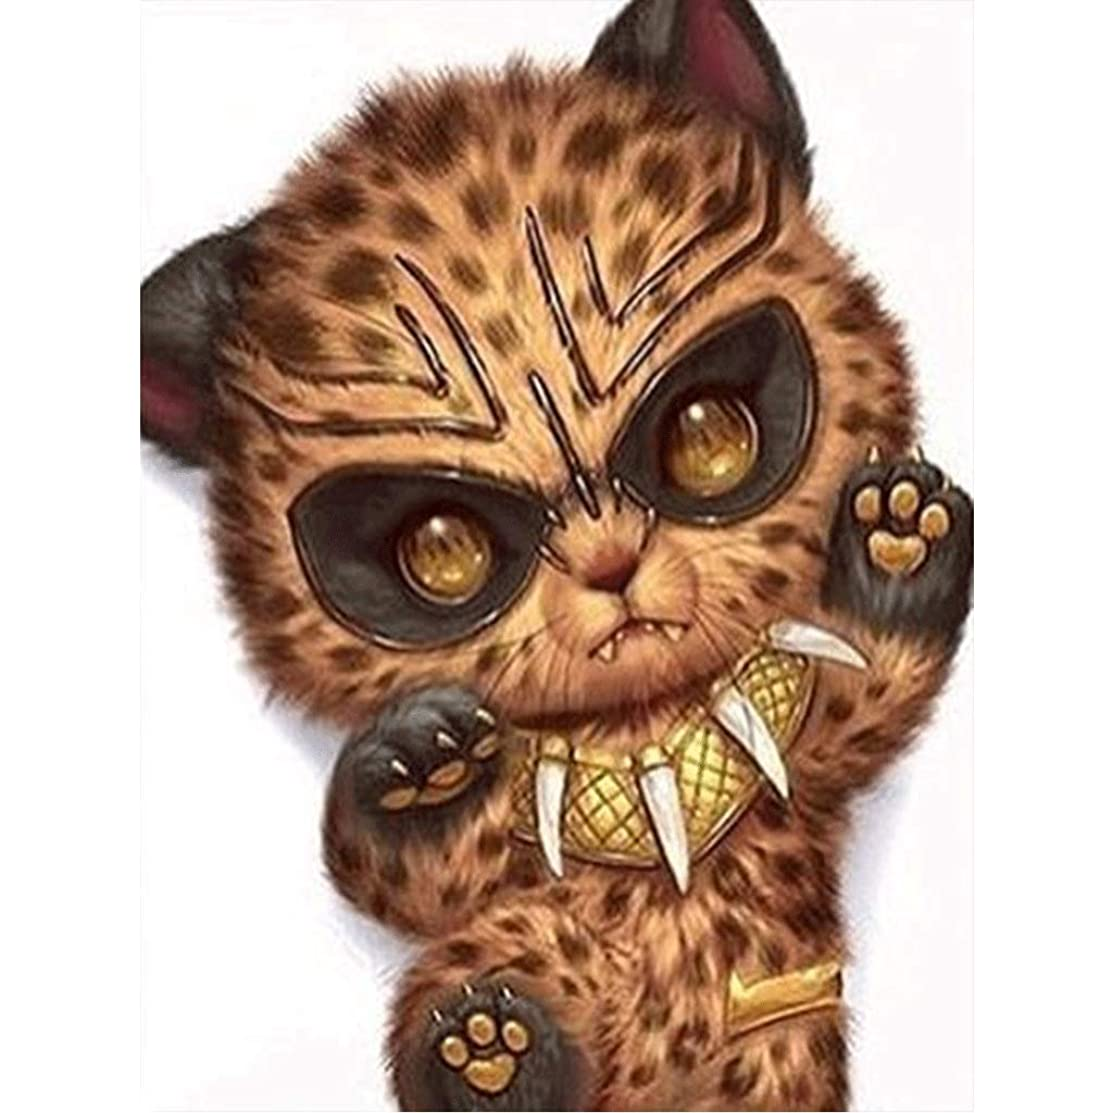 5d Diamond Painting kit,Diamond Painting Violent cat Rhinestone Embroidery Cross Stitch Kits Supply Arts Craft Canvas Wall Decor Stickers 12x16 inches